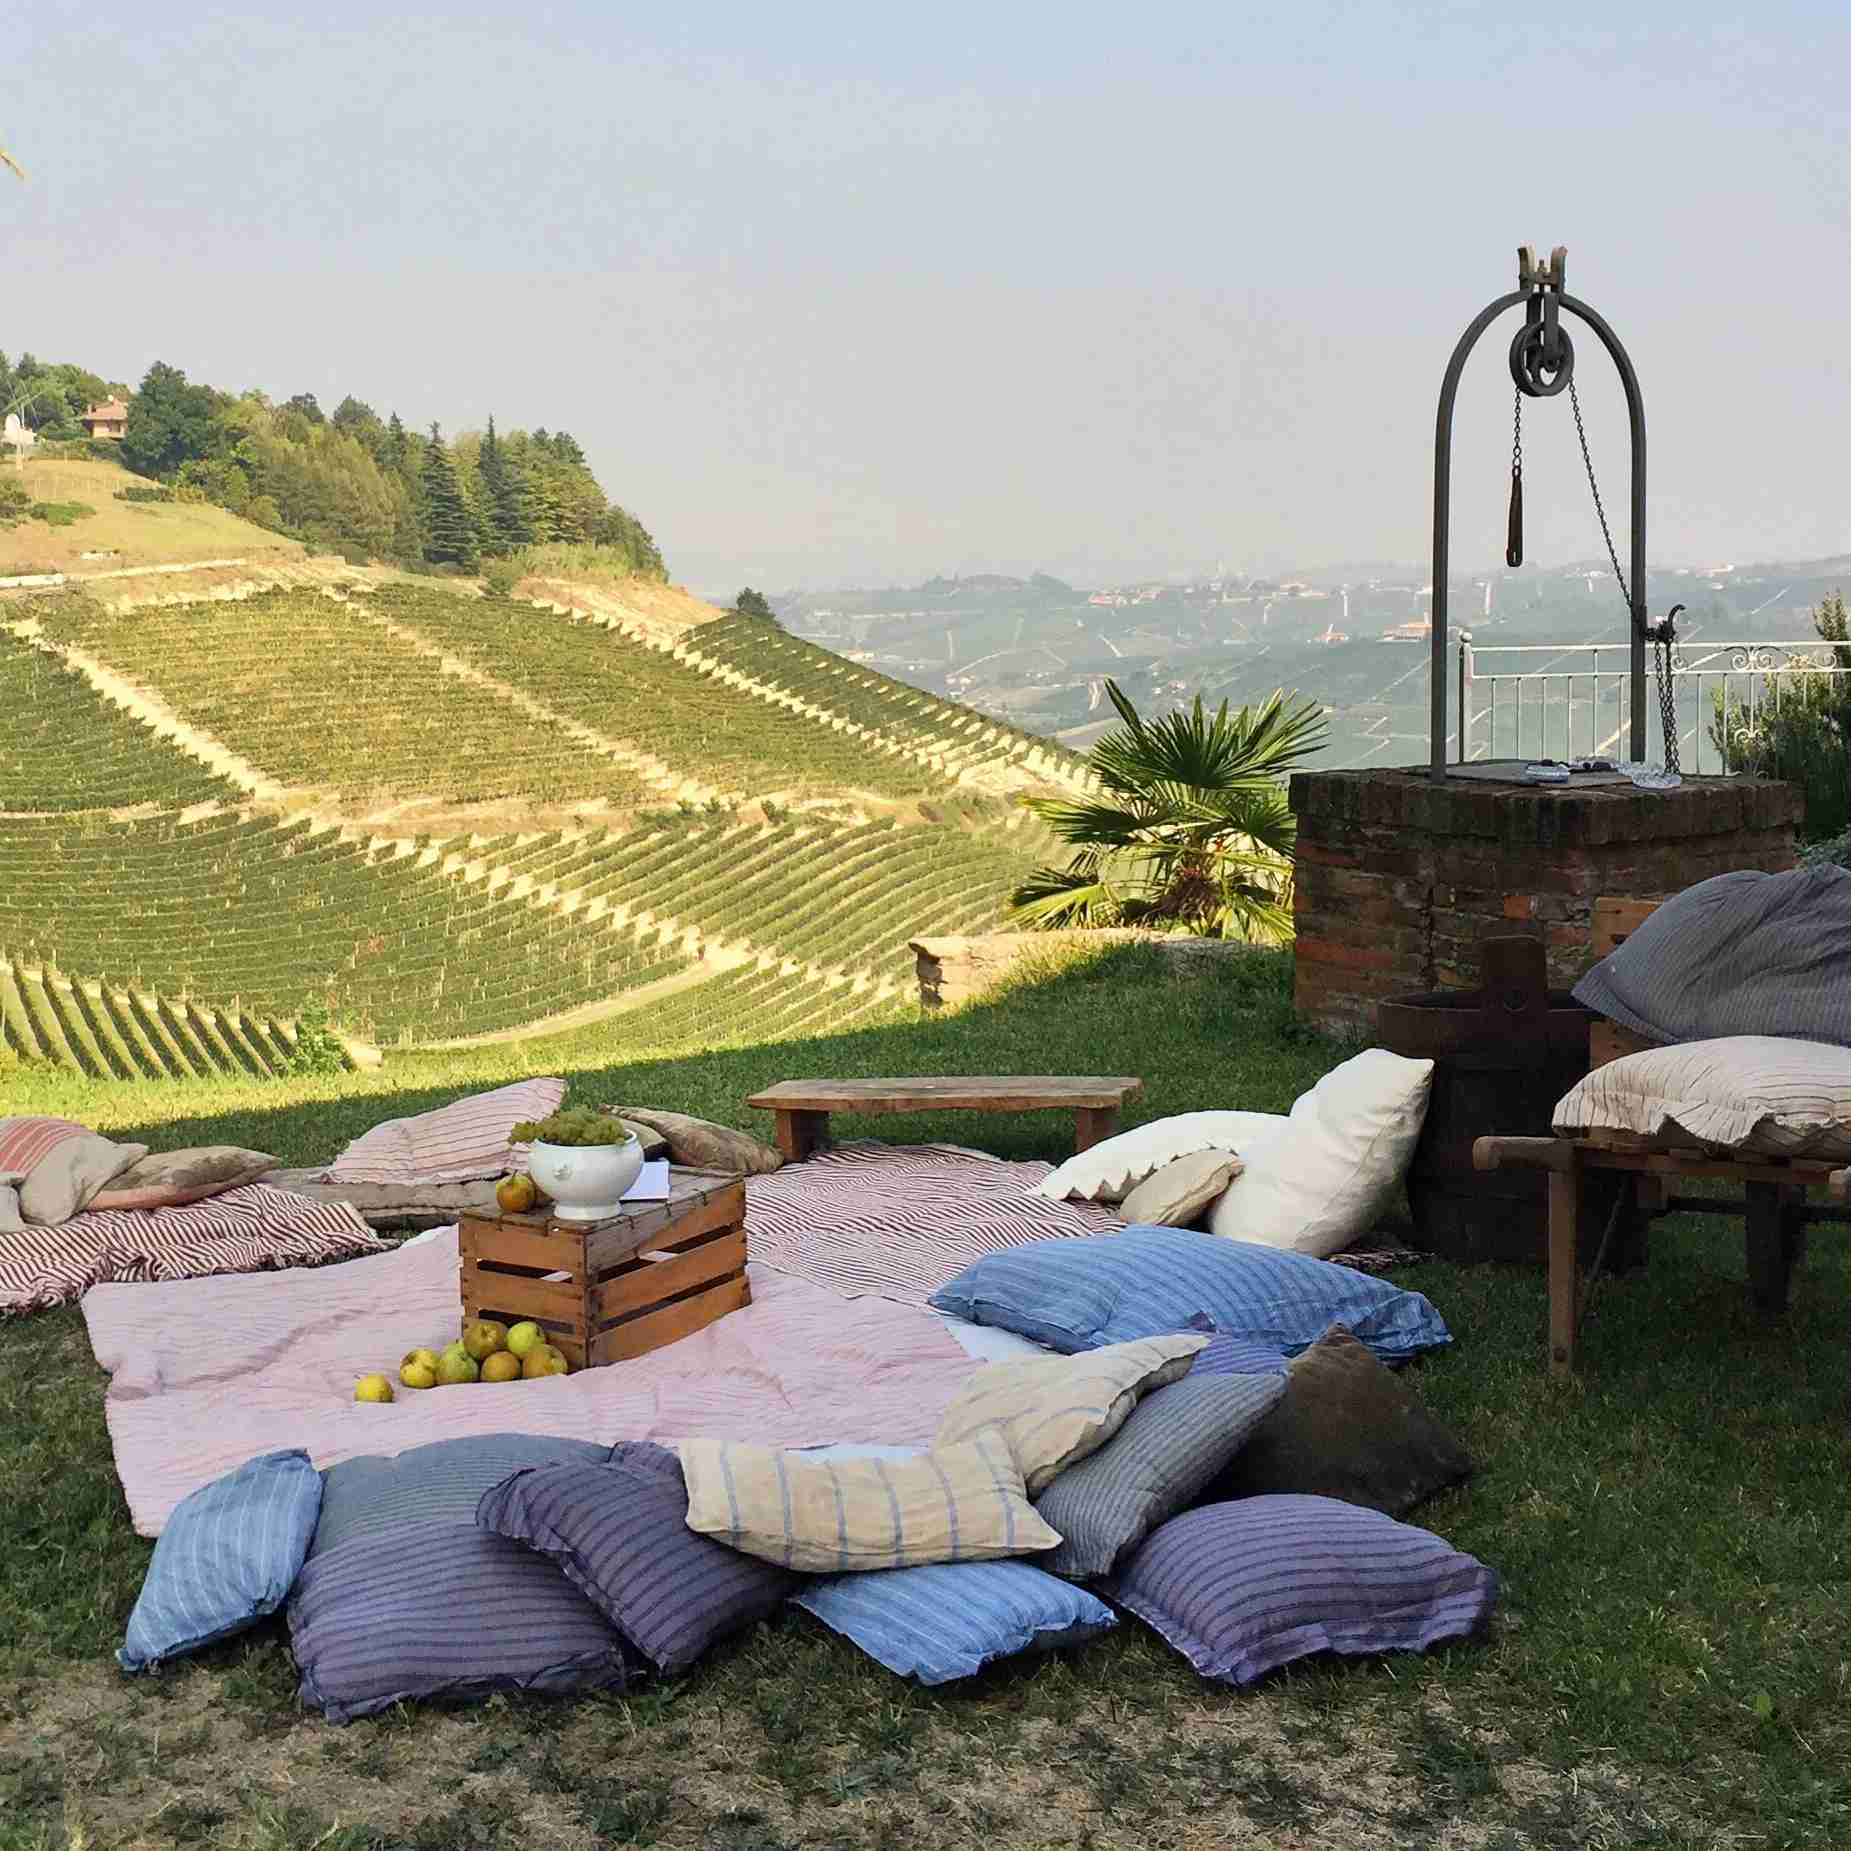 A vineyard in Asti, a Piedmont town known for its sparkling wines. Photo by Laura Itzkowitz